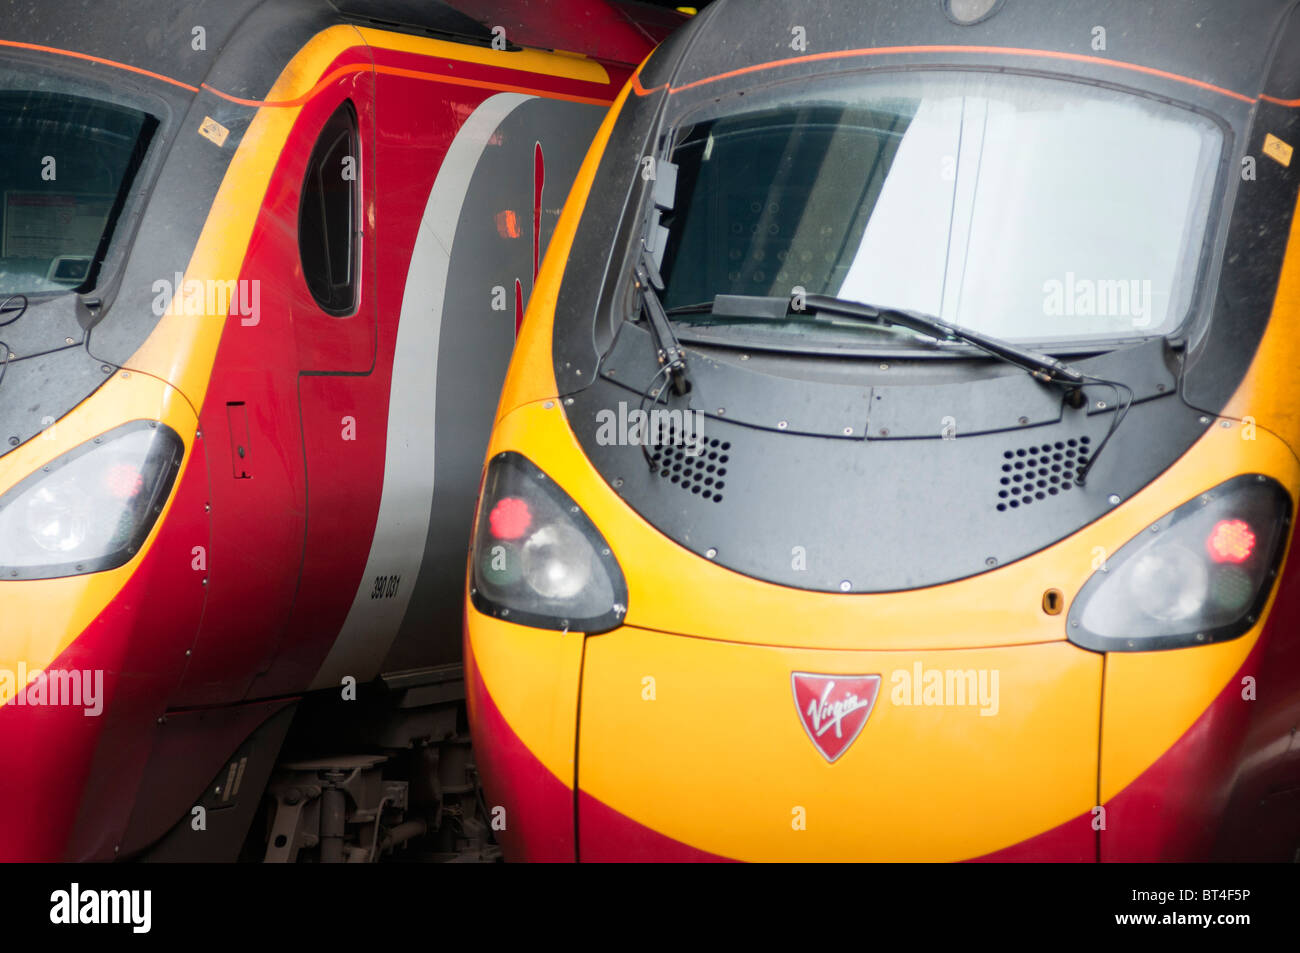 Two Virgin train at the platform at railway station, London, UK - Stock Image